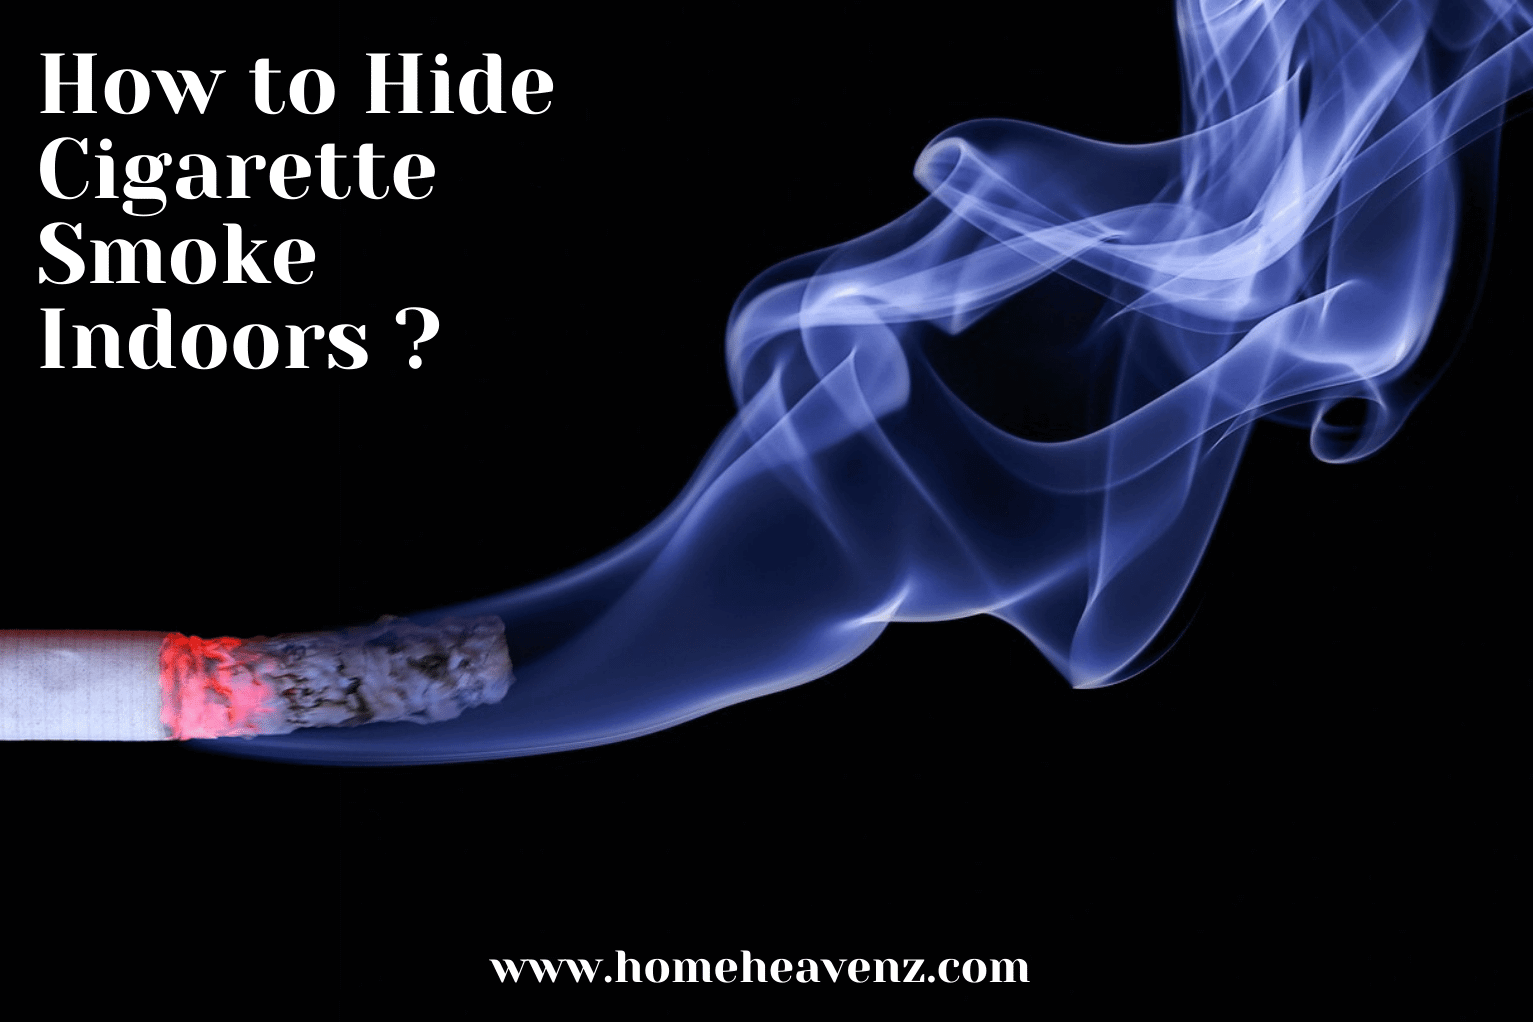 How to Hide Cigarette Smoke Indoors